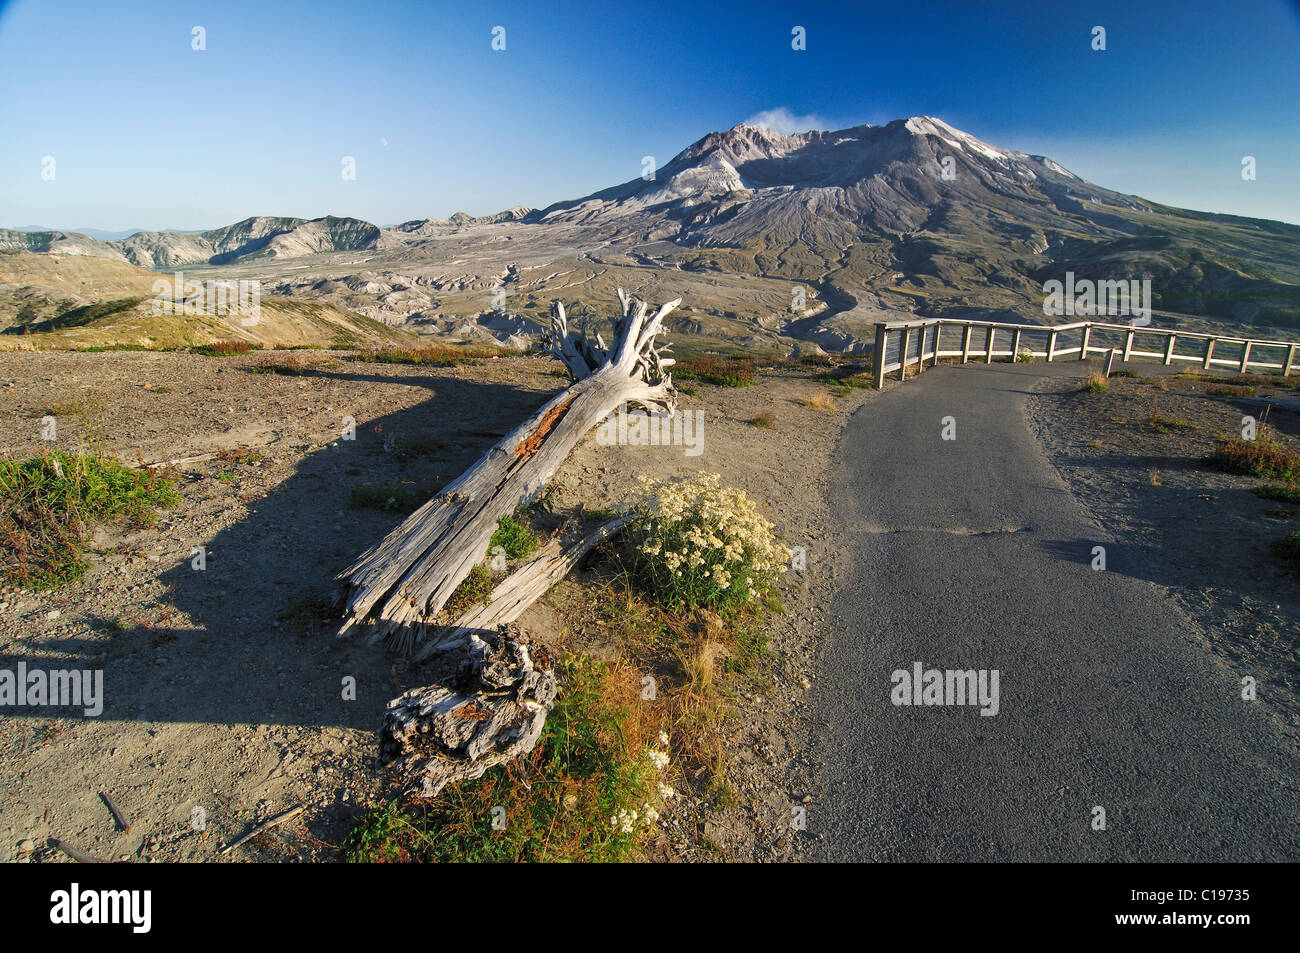 Tree stump dismantled by a volcanic eruption induced pressure wave next to a trail, smoking lava dome at back, National - Stock Image